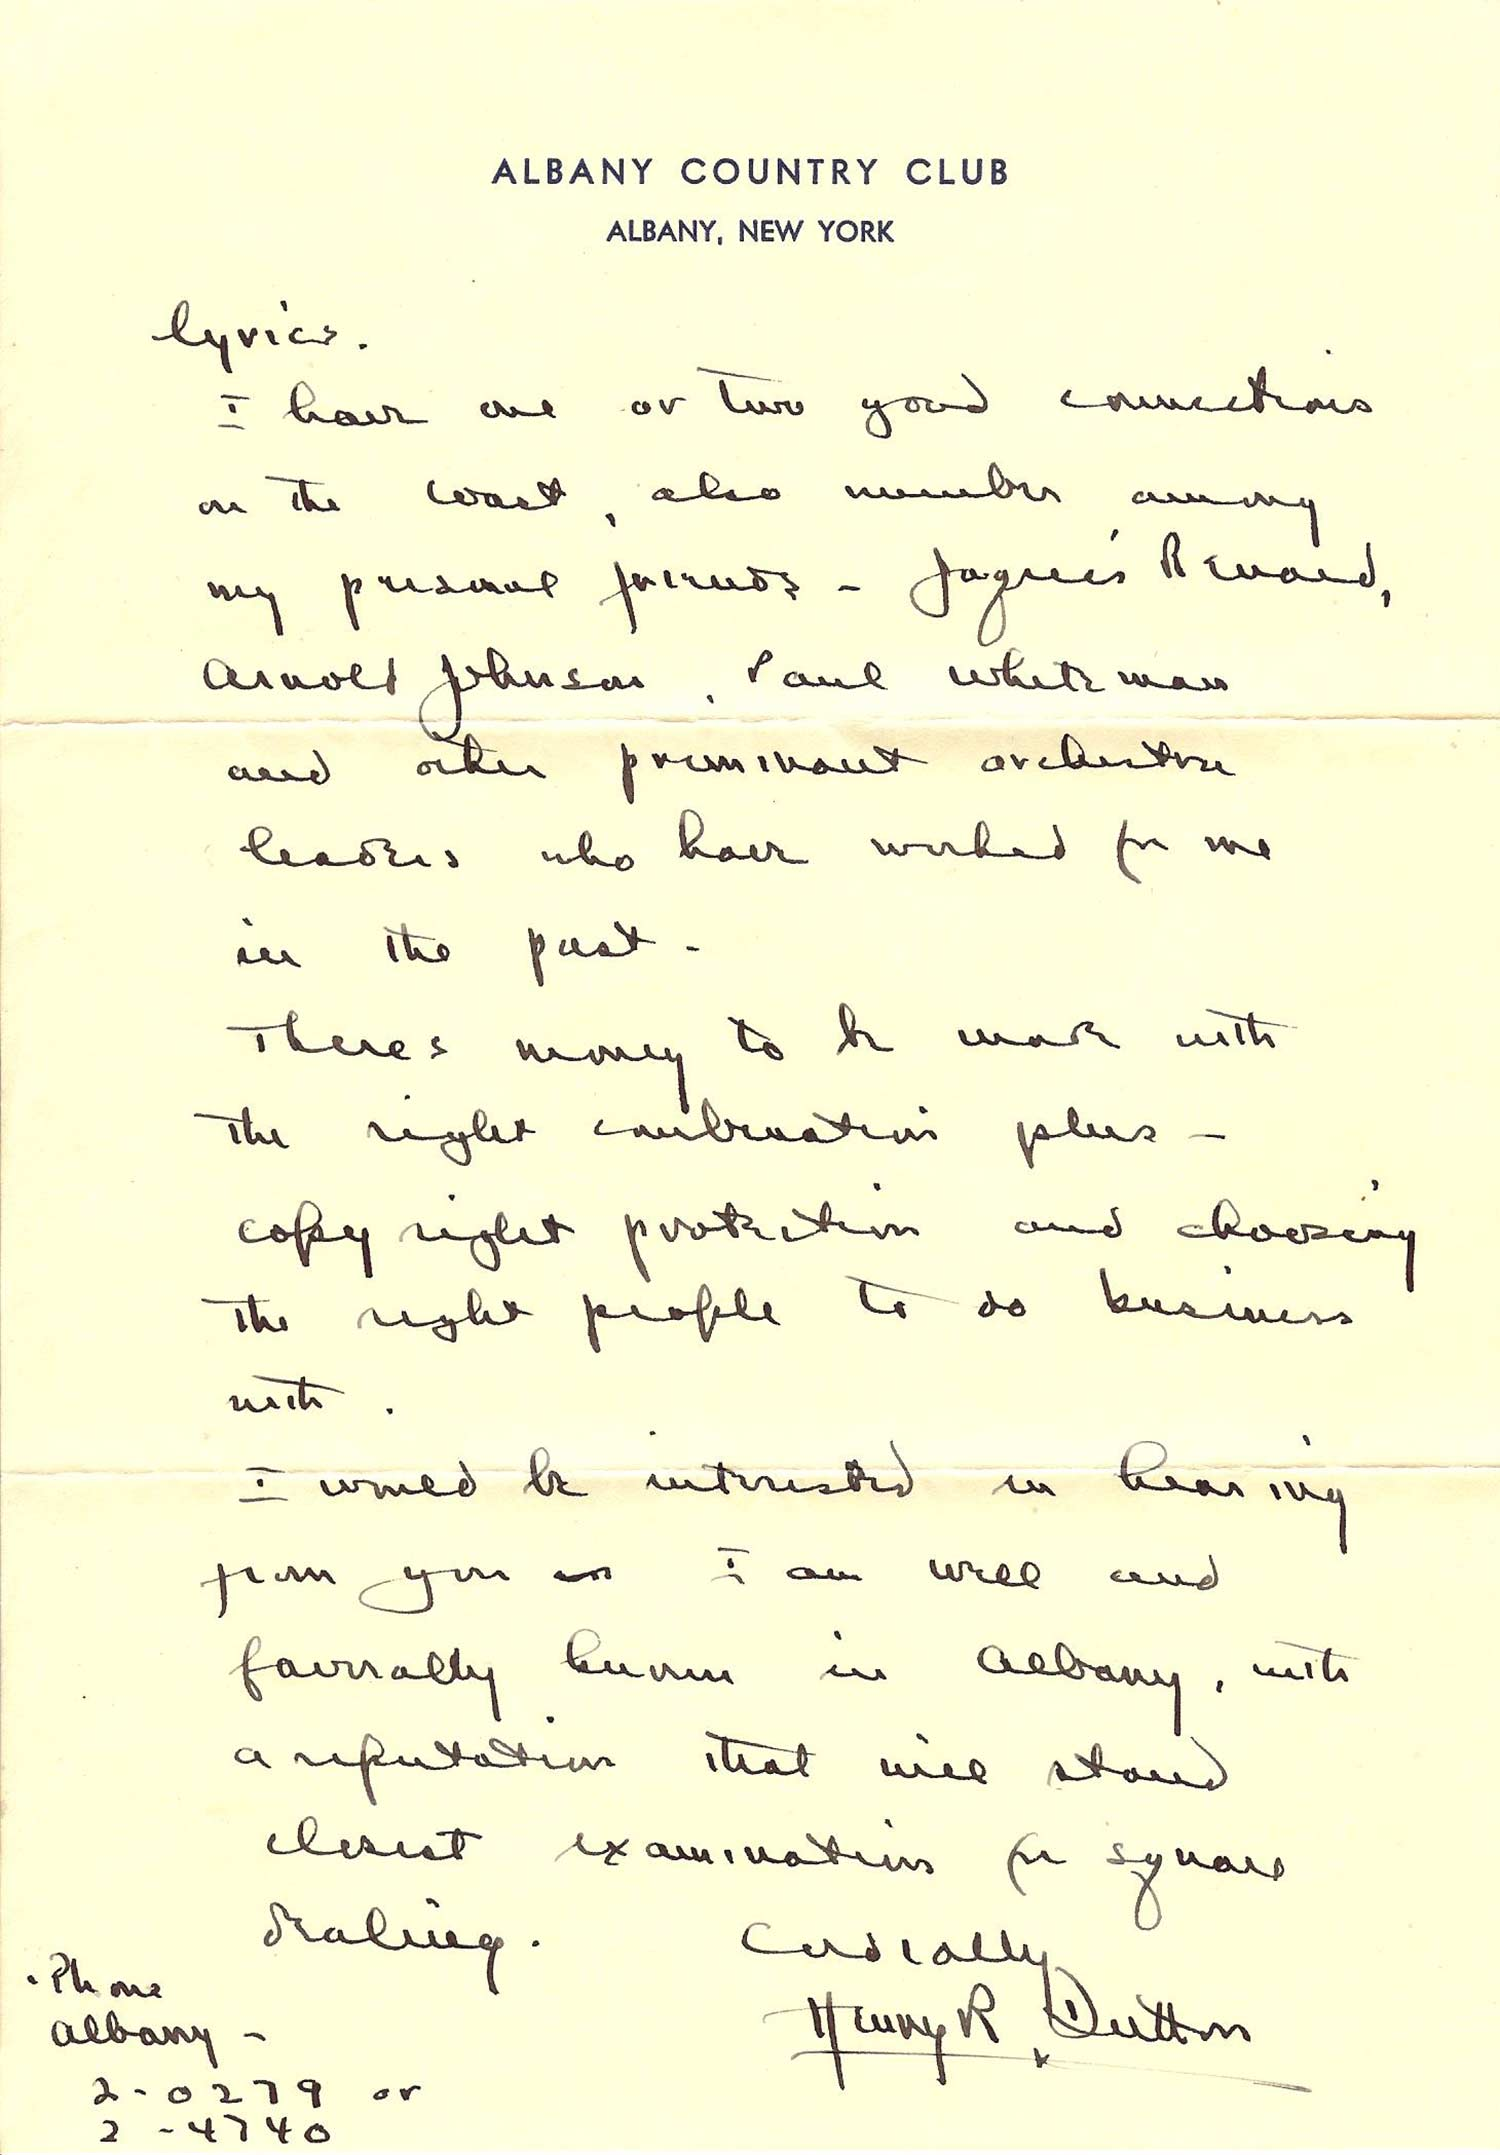 Henry R. Dutton Letter Page 2